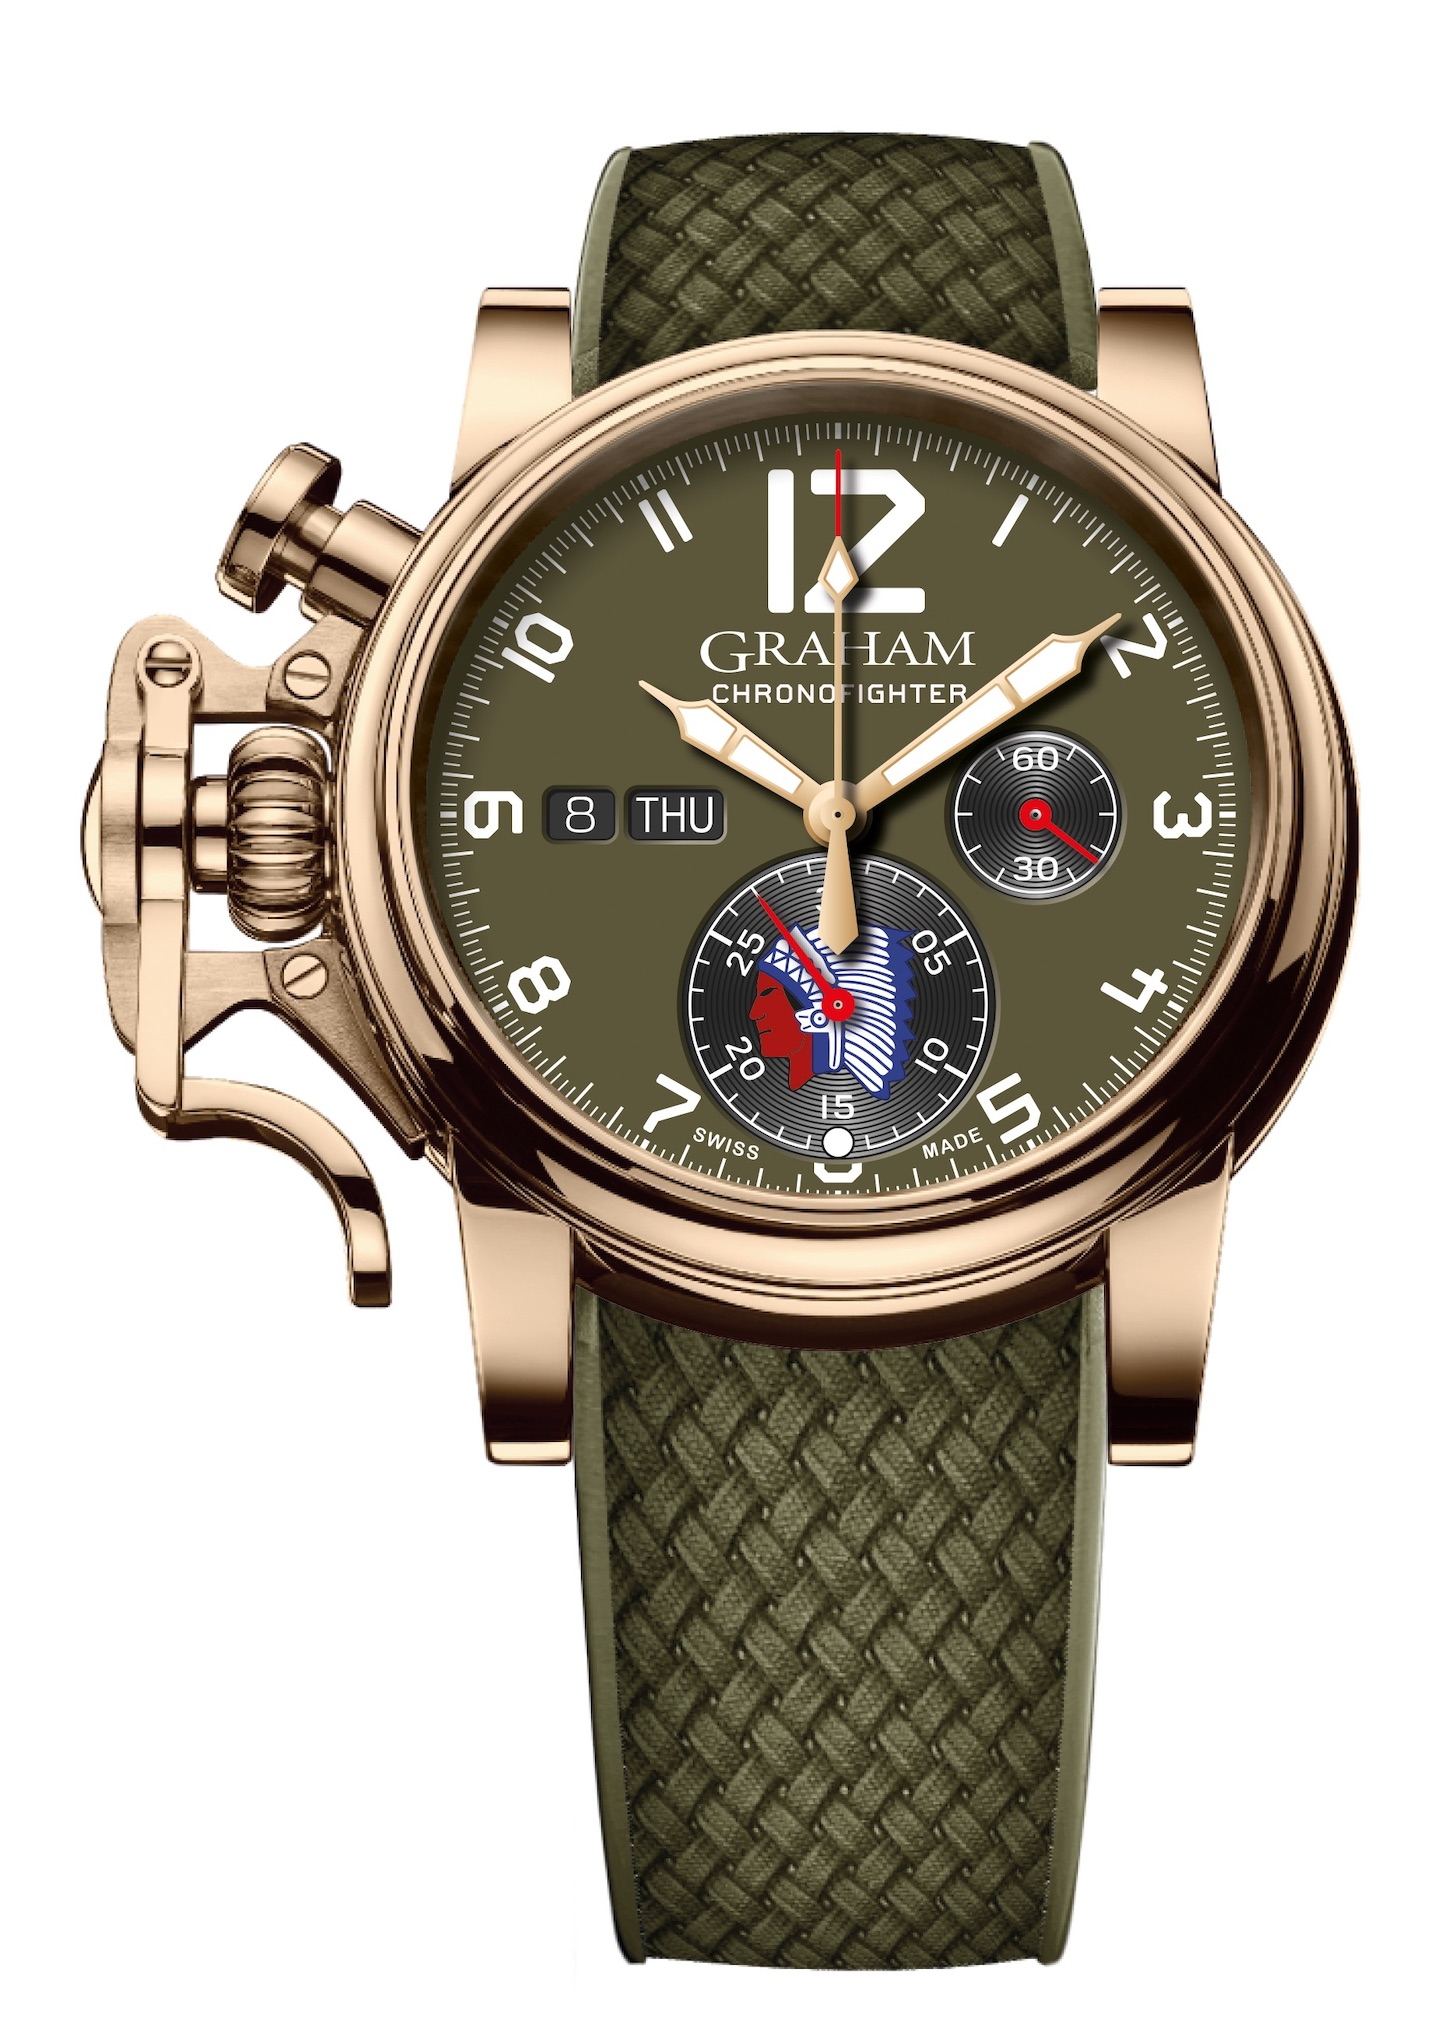 Graham Chronofighter Vintage Overlord watch.